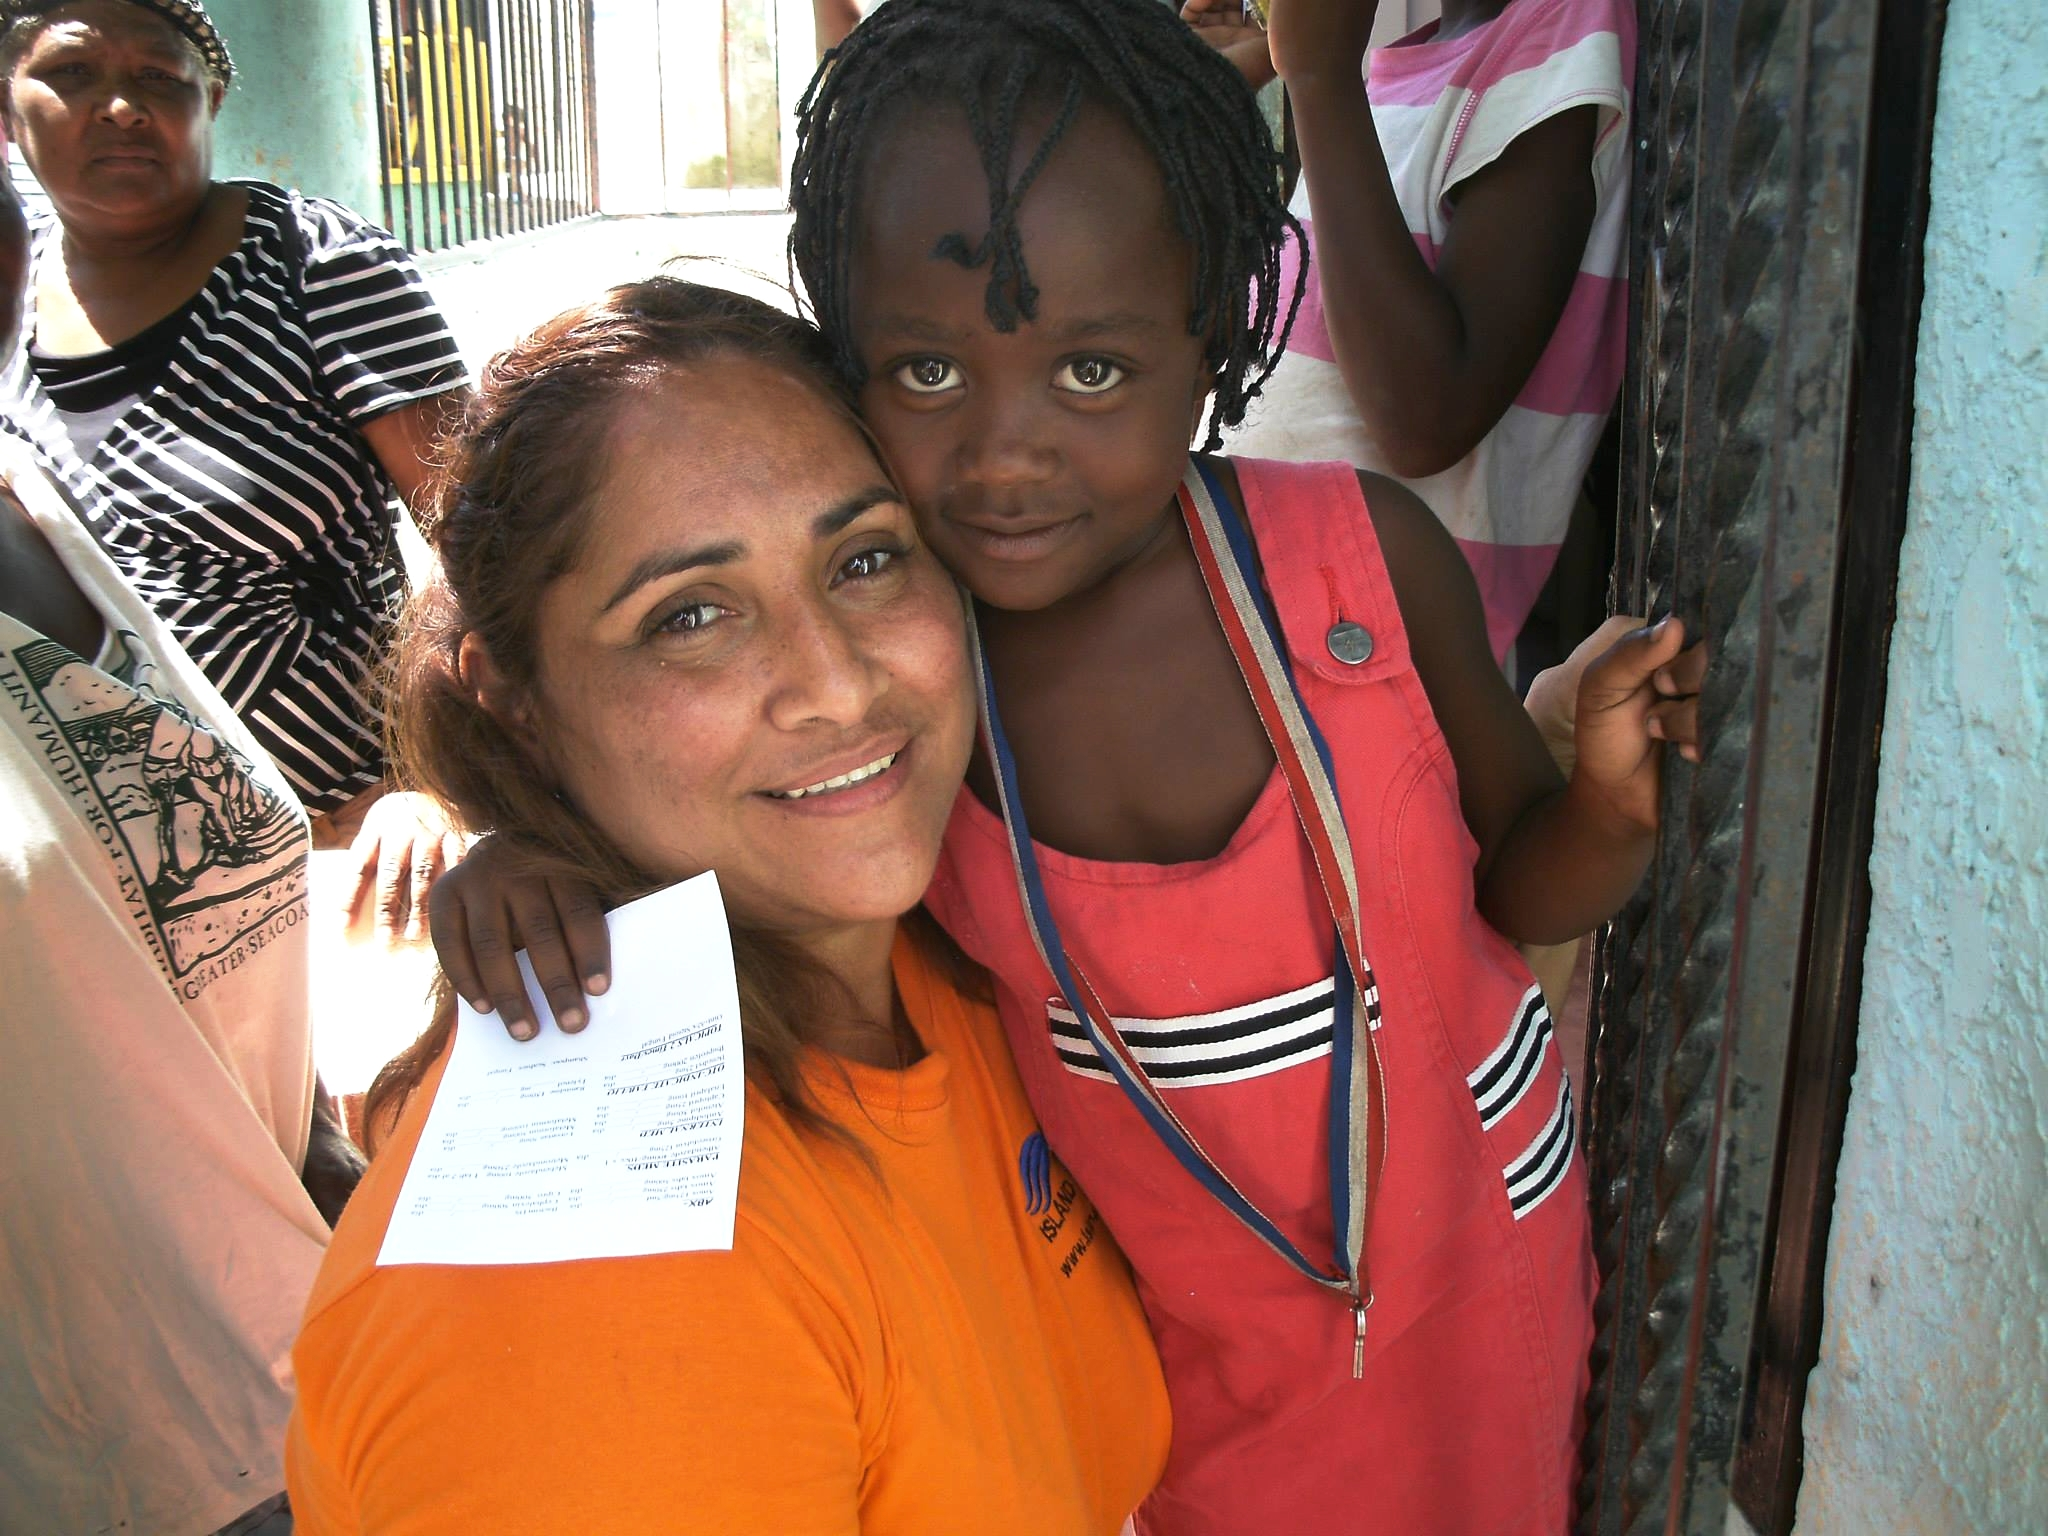 suzy from island impact with small haitian child.jpg